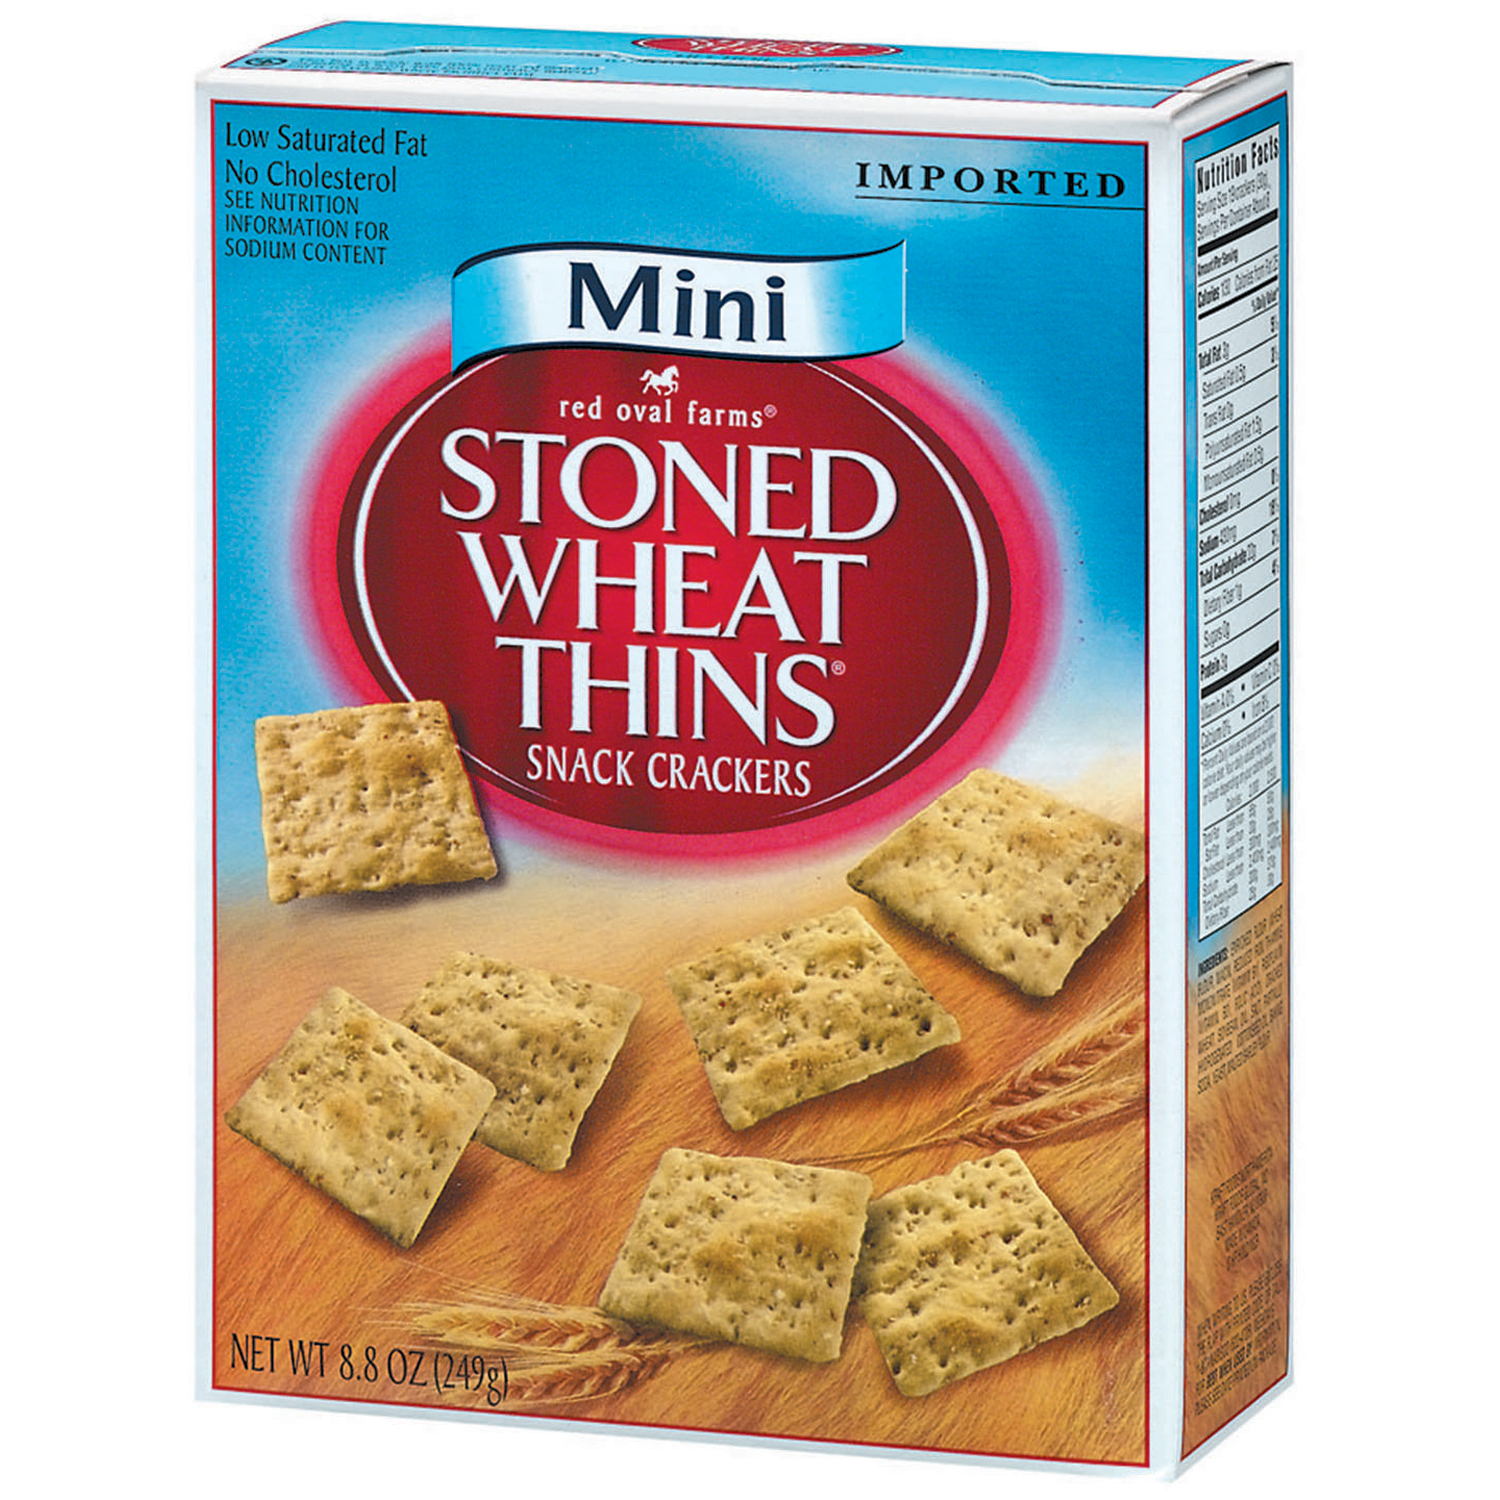 Nabisco Red Oval Farms: Mini Stoned Wheat Thins Crackers, 8.8 Oz